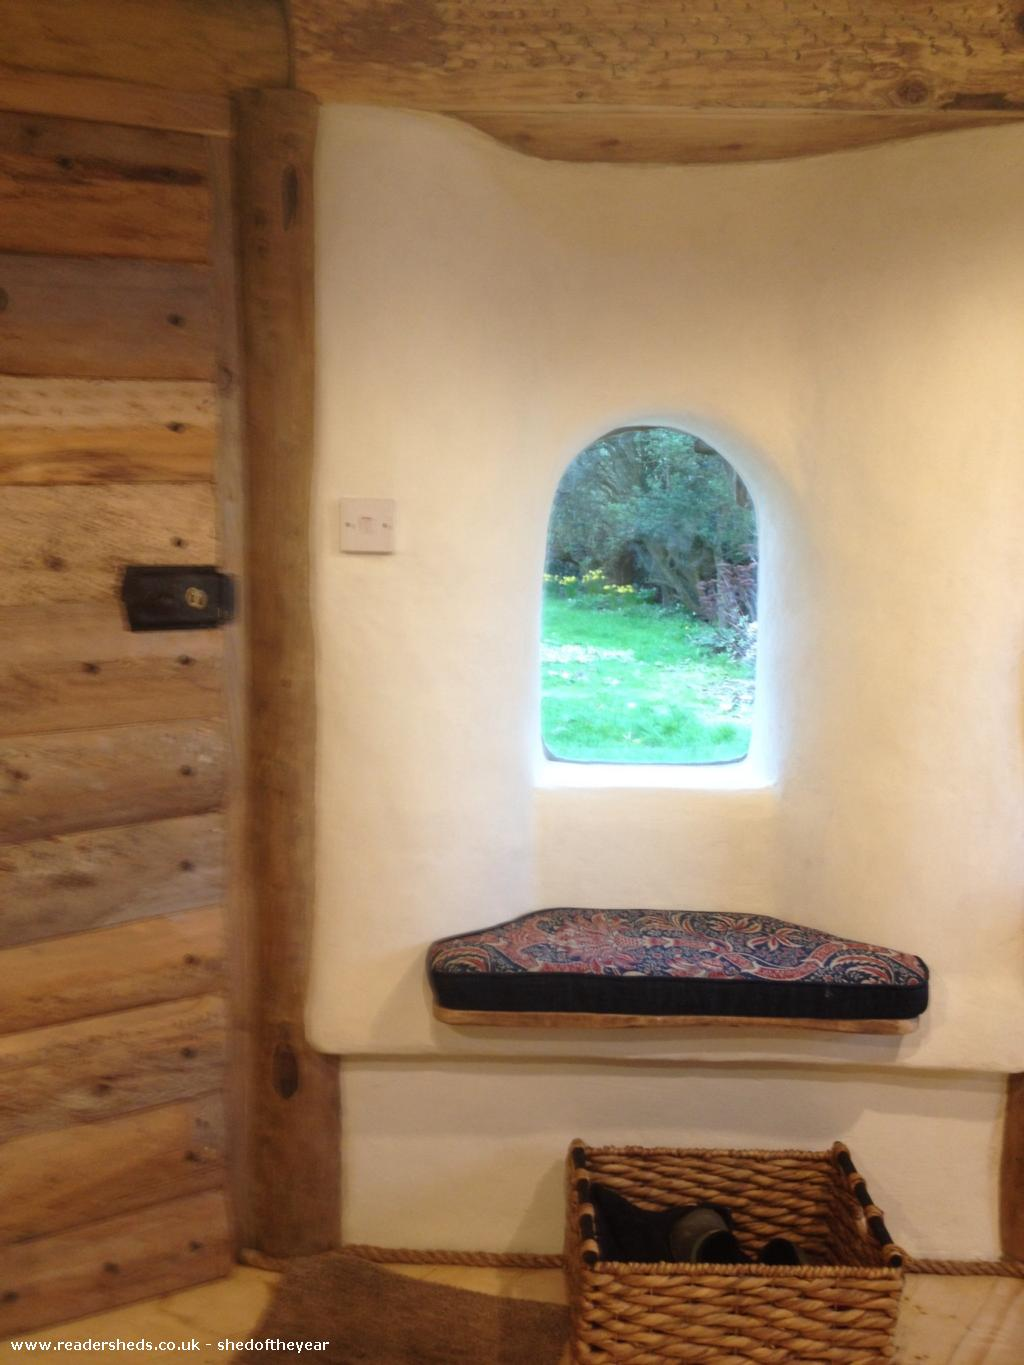 Photo of Hobbit House, entry to Shed of the year-Window seat